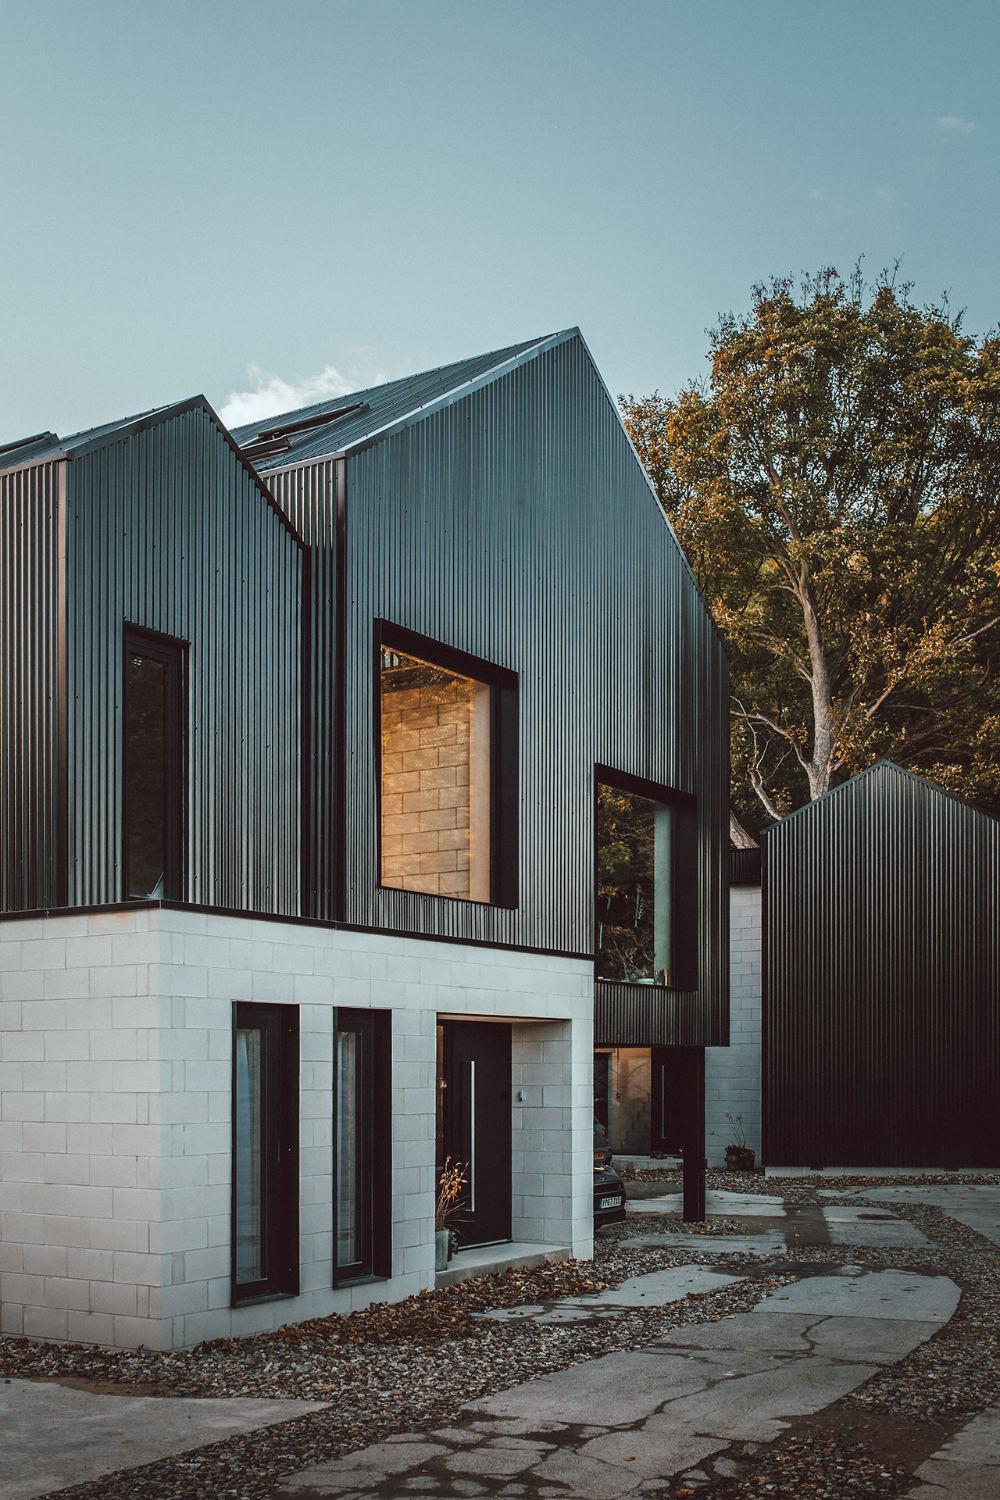 Corn Yard Twin Brothers Nik Jon Daughtry S Self Build Homes Of Industrial Elegance Yatzer In 2020 Architecture Modern Architecture Scandinavian Architecture